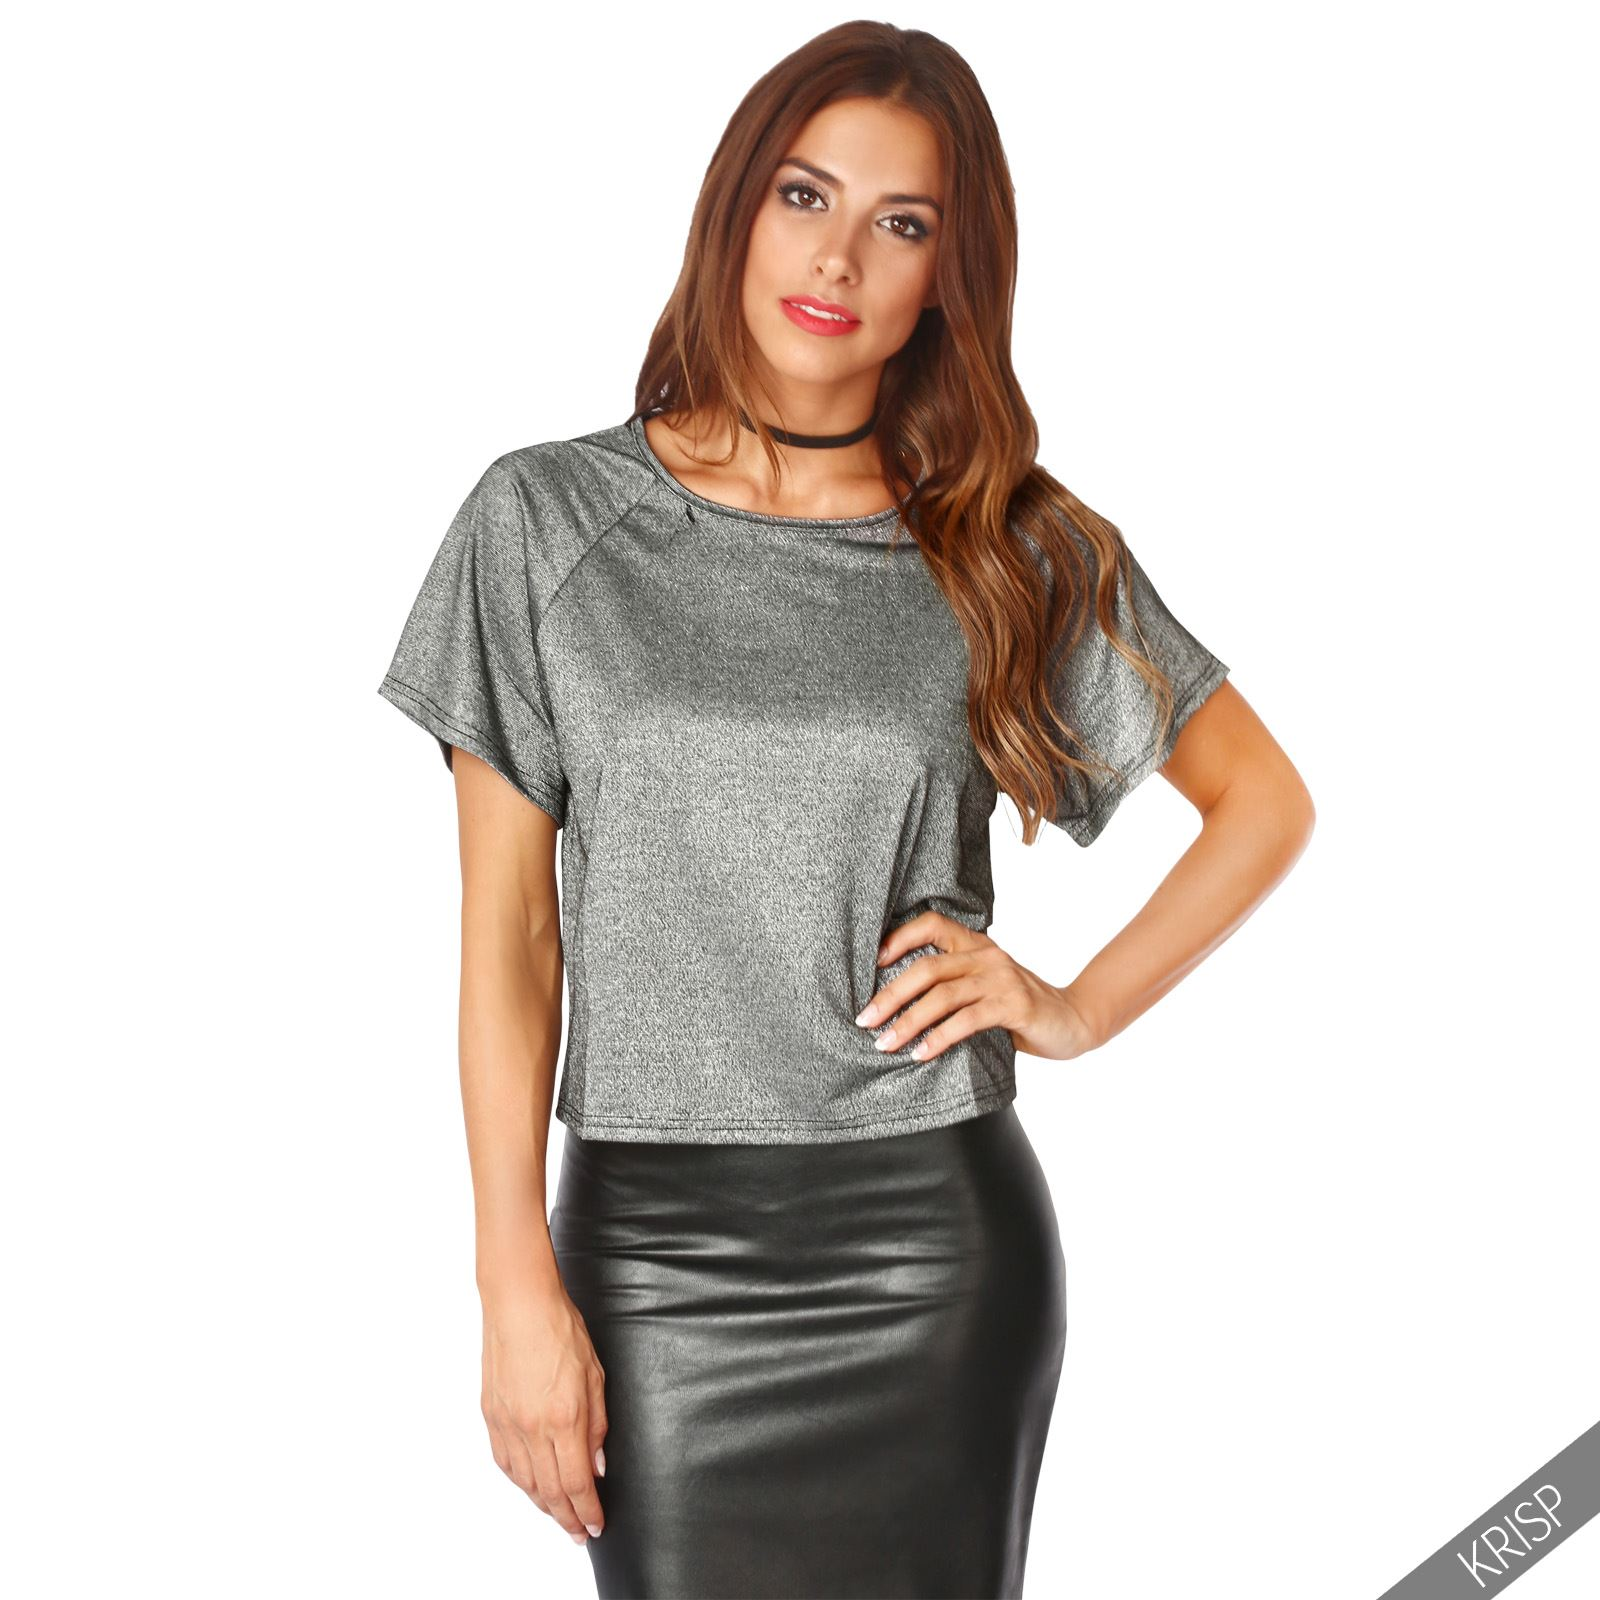 Online shopping from a great selection at Clothing Store. Showing the most relevant results. See all results for womens gold metallic top.